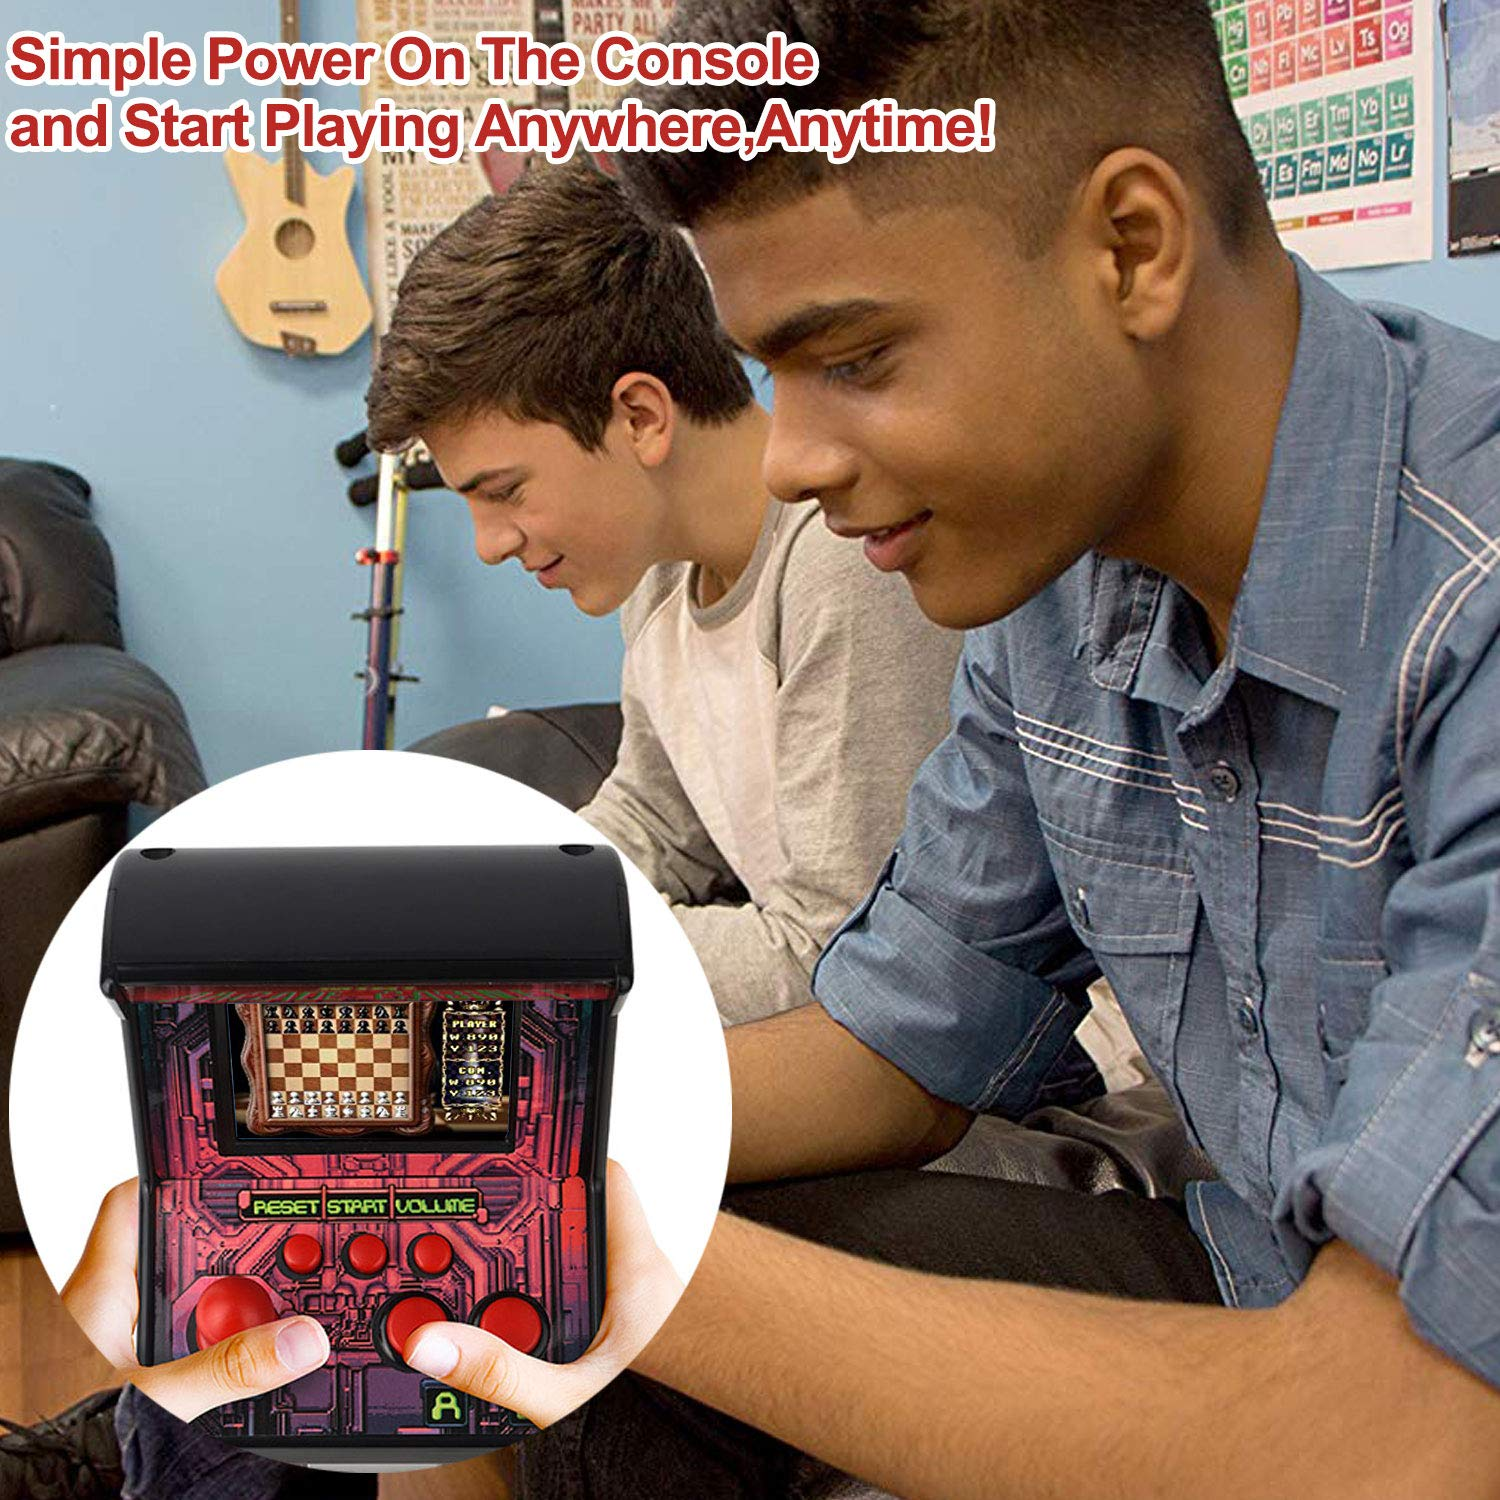 GBD Kids Mini Retro Arcade Game Cabinet Machine 200 Classic Handheld Video Games 2.5'' Display Joystick Travel Portable Game Player Kids Boys Girls Holiday Birthday Gifts Electronic Toys by GBD (Image #7)